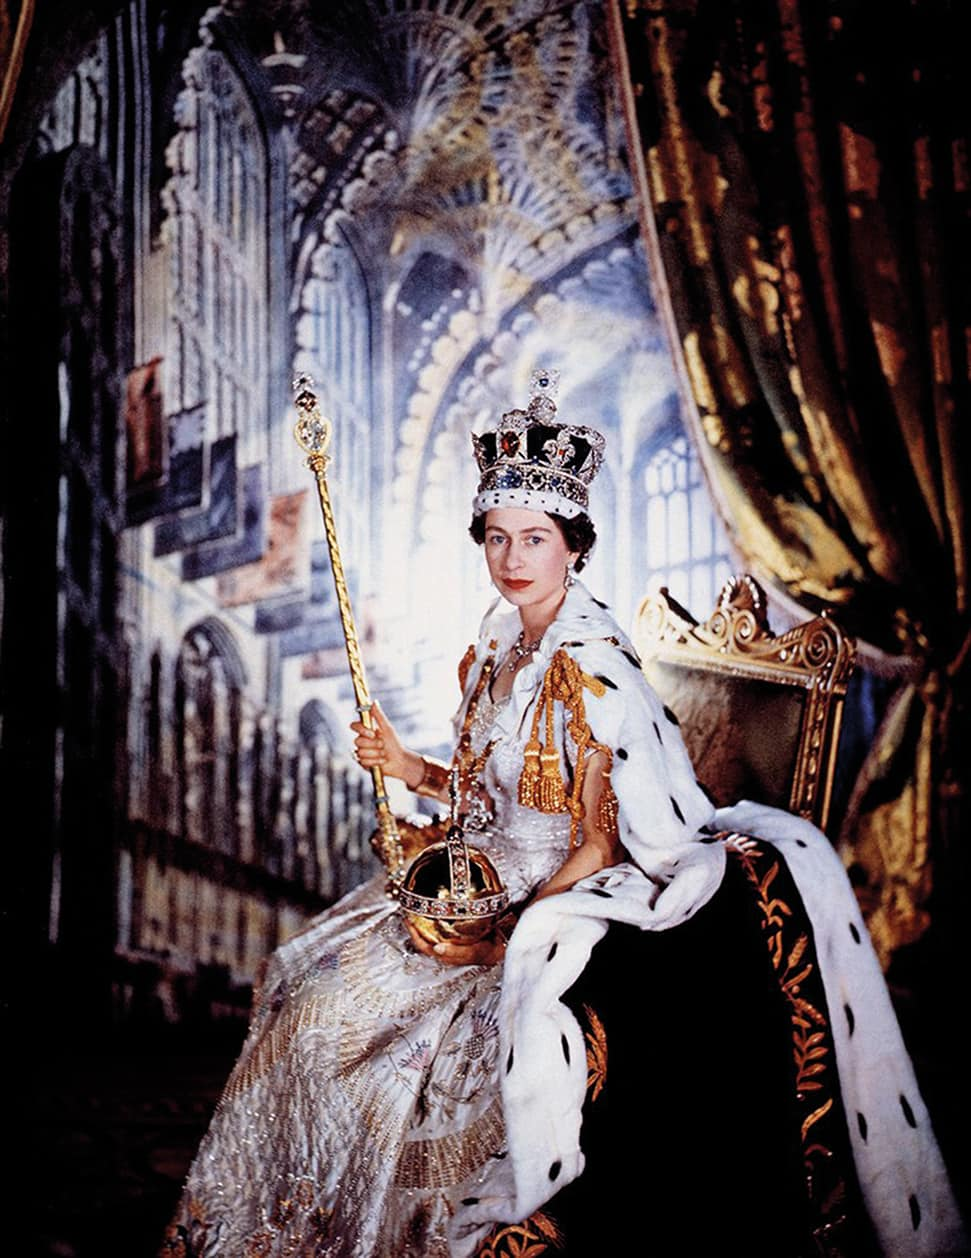 Queen Elizabeth II, photographed by Cecil Beaton in 1953, England